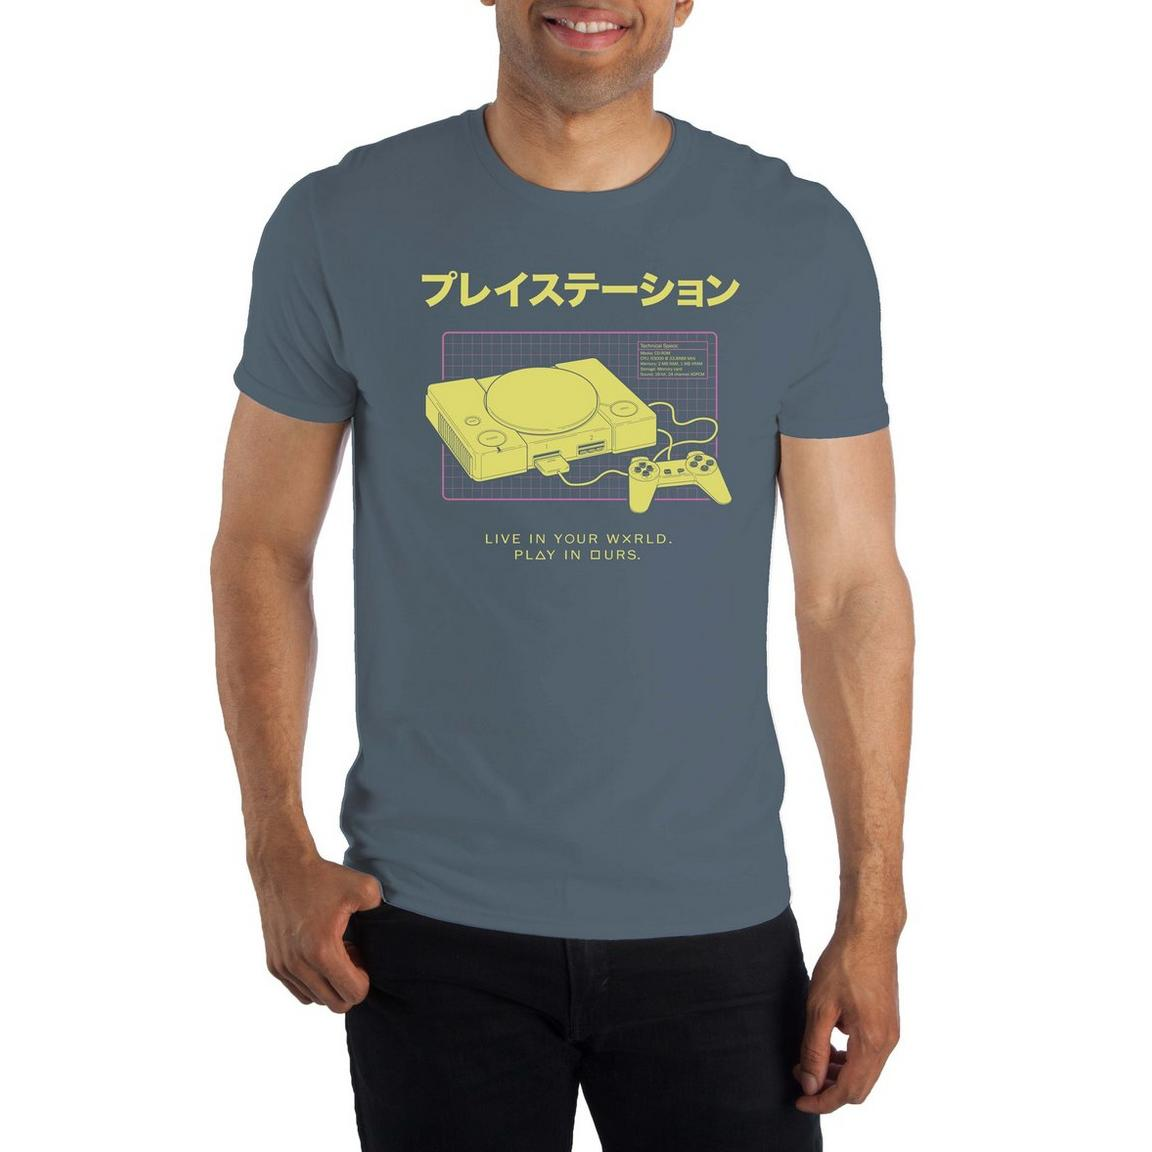 Men's Licensed Gaming and Pop Culture Graphic T-Shirts